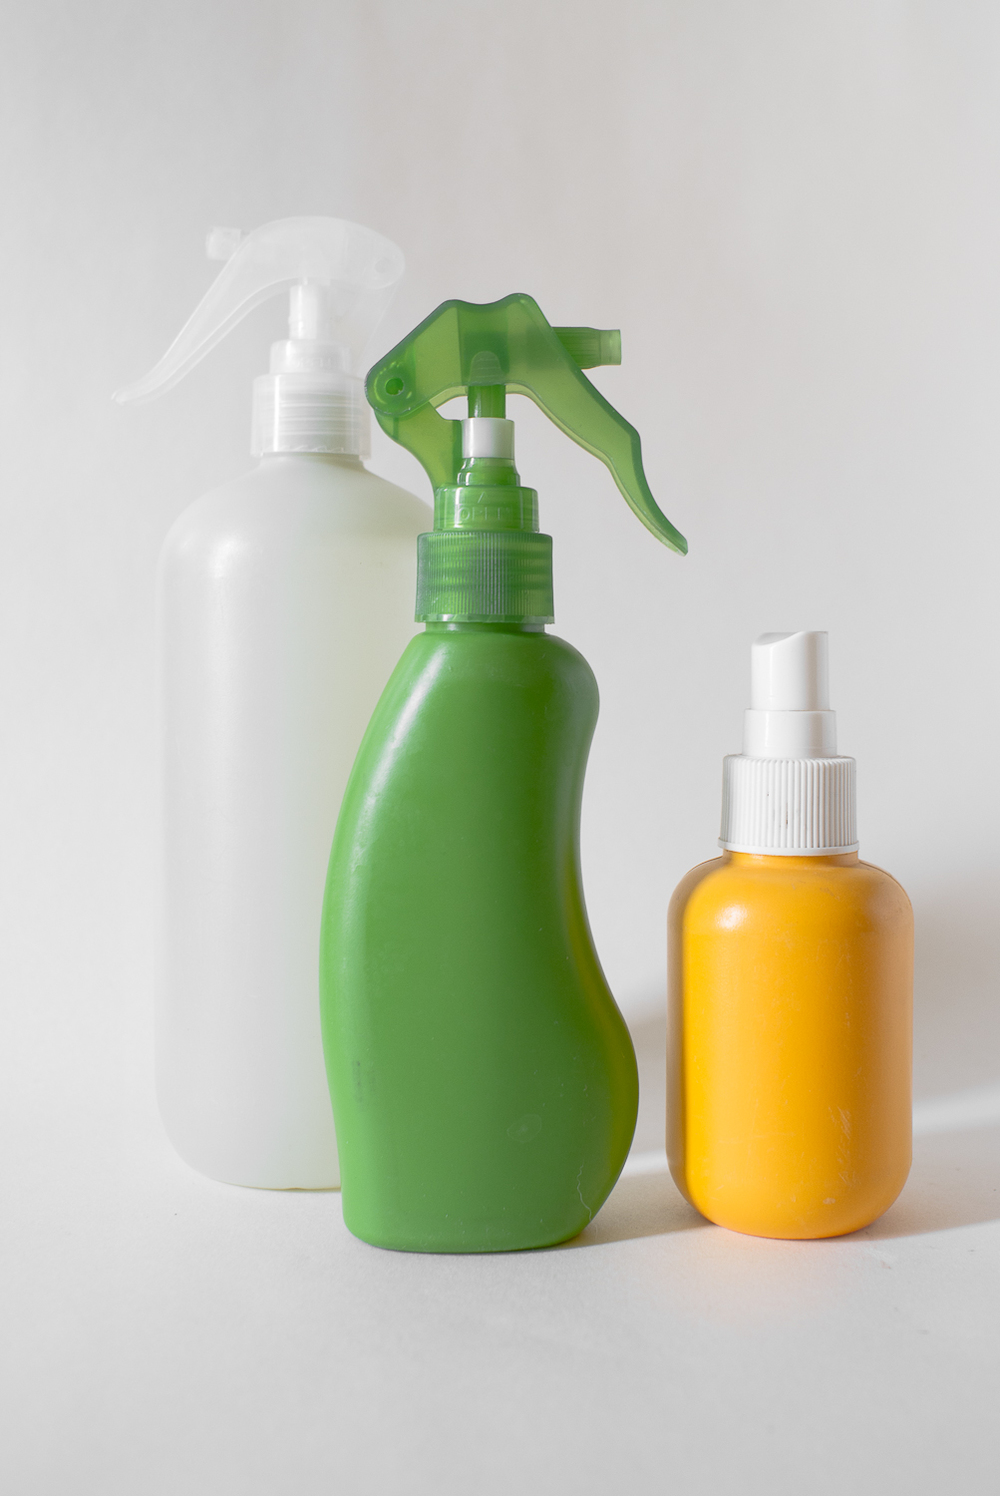 Three sprayers that once held non-toxic substances for household or cosmetic use. Note how elegant they look with thelabels neatly peeled off. (Note also that,depending on the adhesive used by the manufacturer,sometimes removing the label is a job for a heavy-dutysolvent like lighter fluid.)